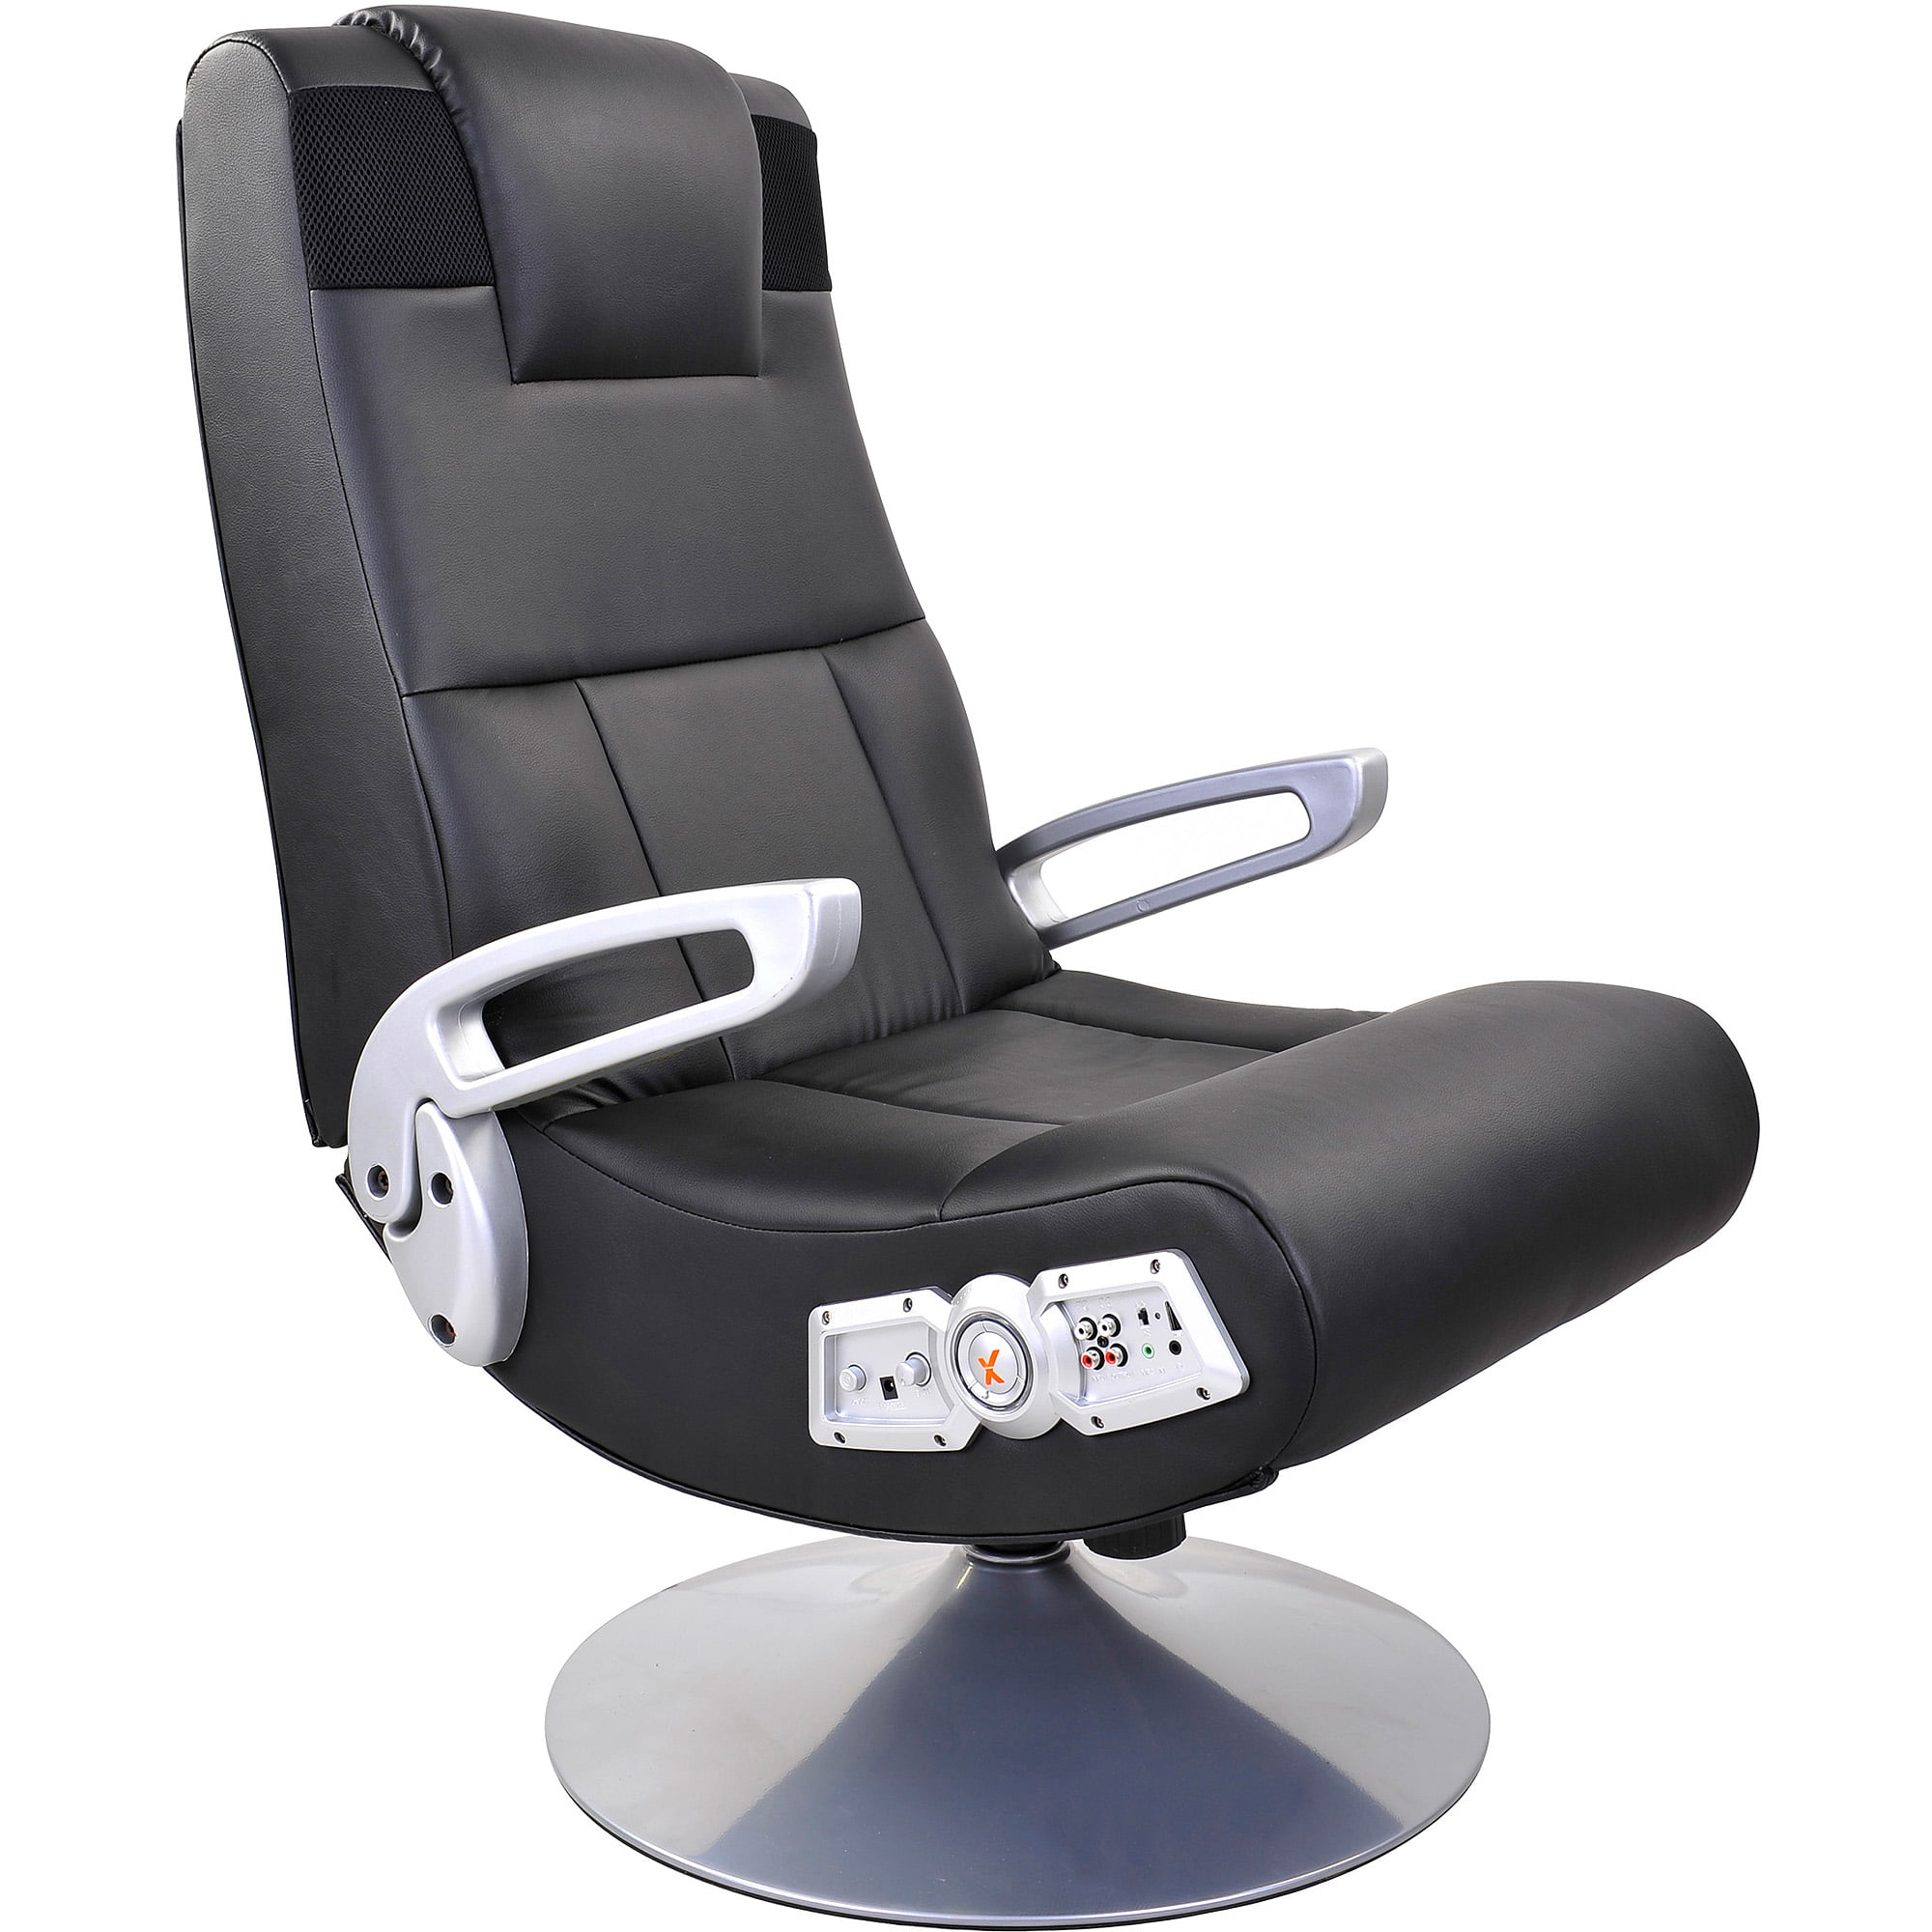 X Rocker Pedestal Video Gaming Chair With Bluetooth Technology